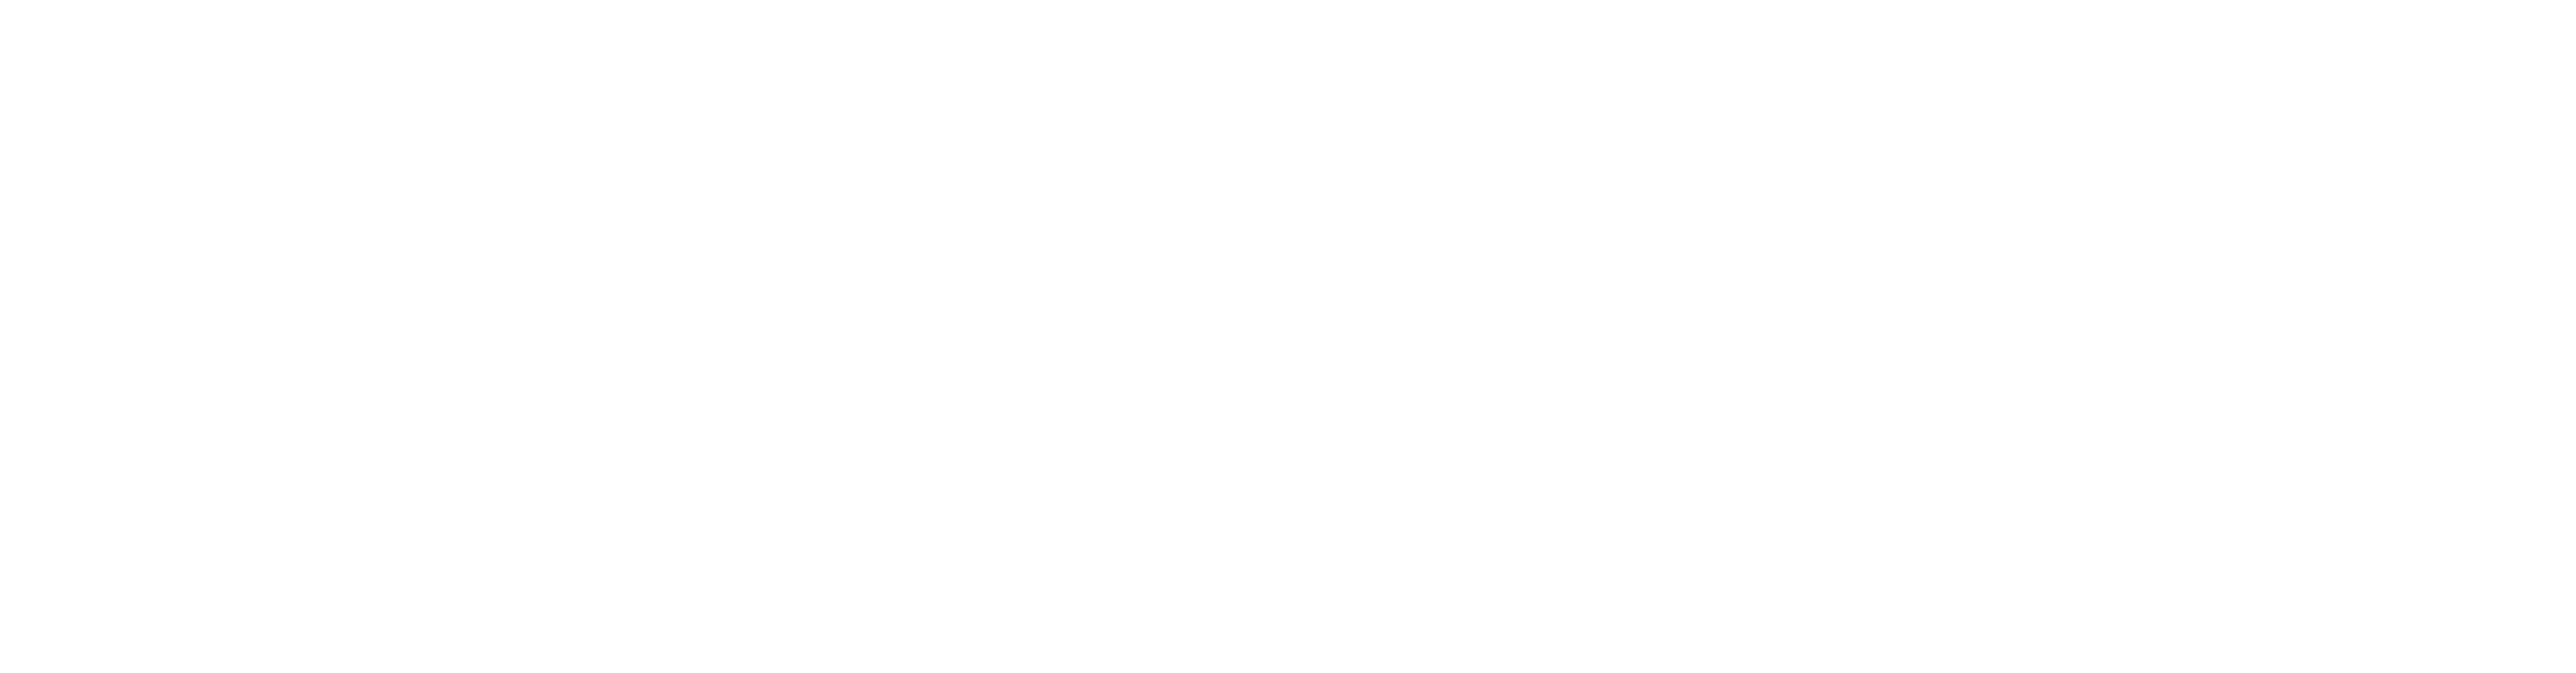 The 7th Bough Creative Agencies